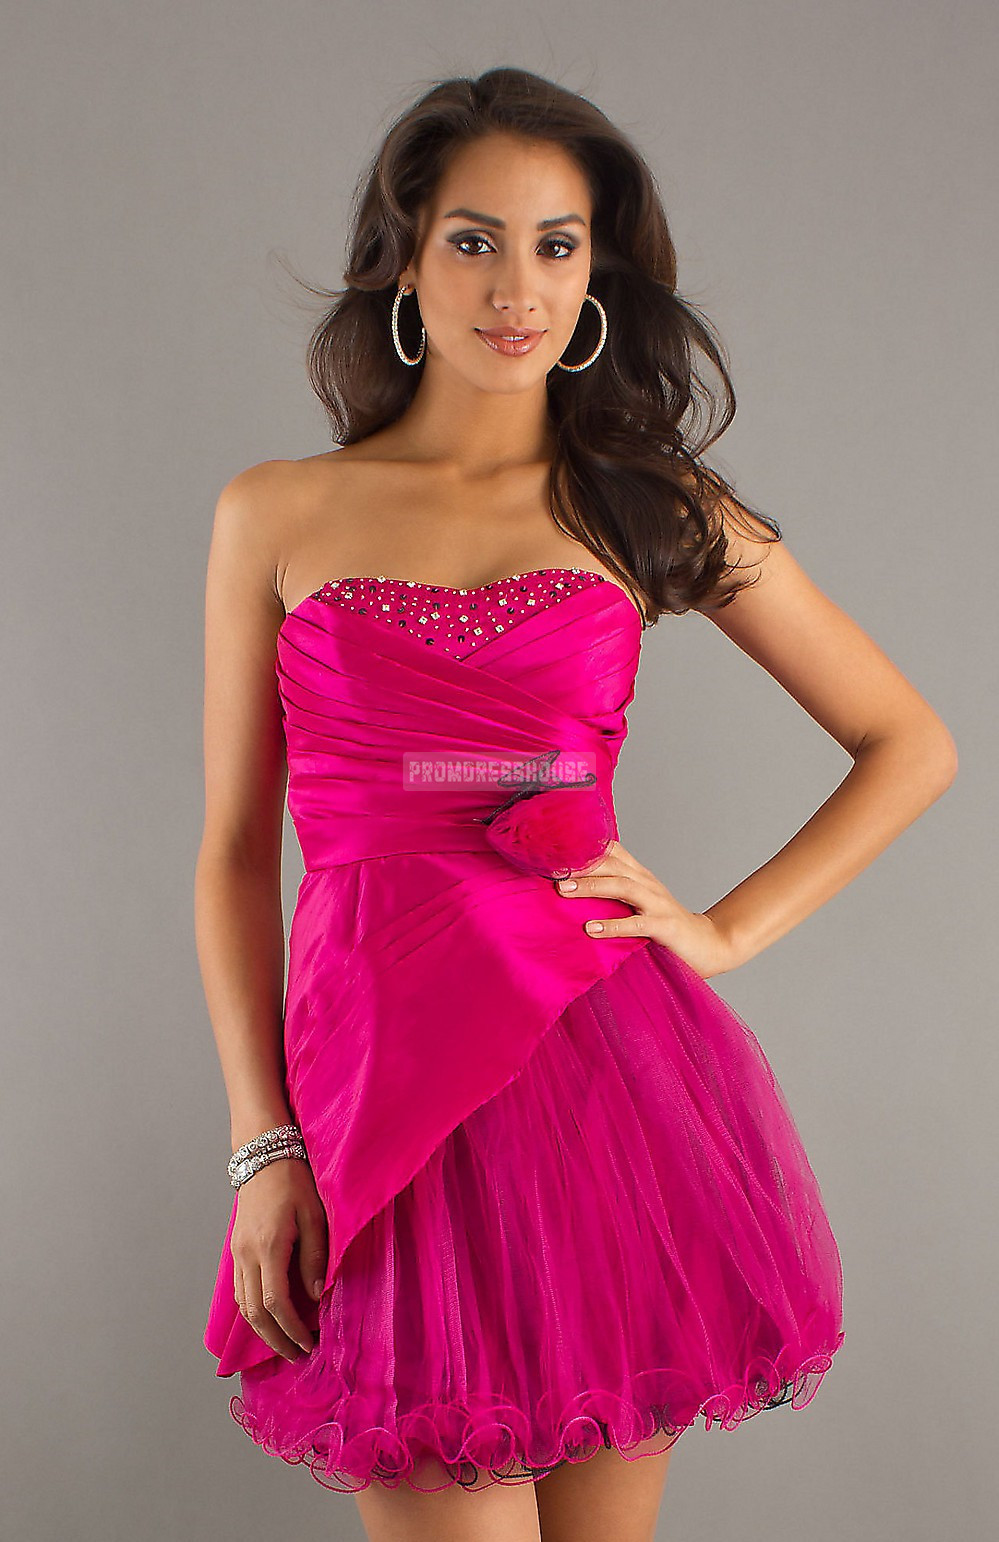 Strapless Fuchsia Lace-up Satin Draped Baby Doll Cocktail Dress - Promdresshouse.com